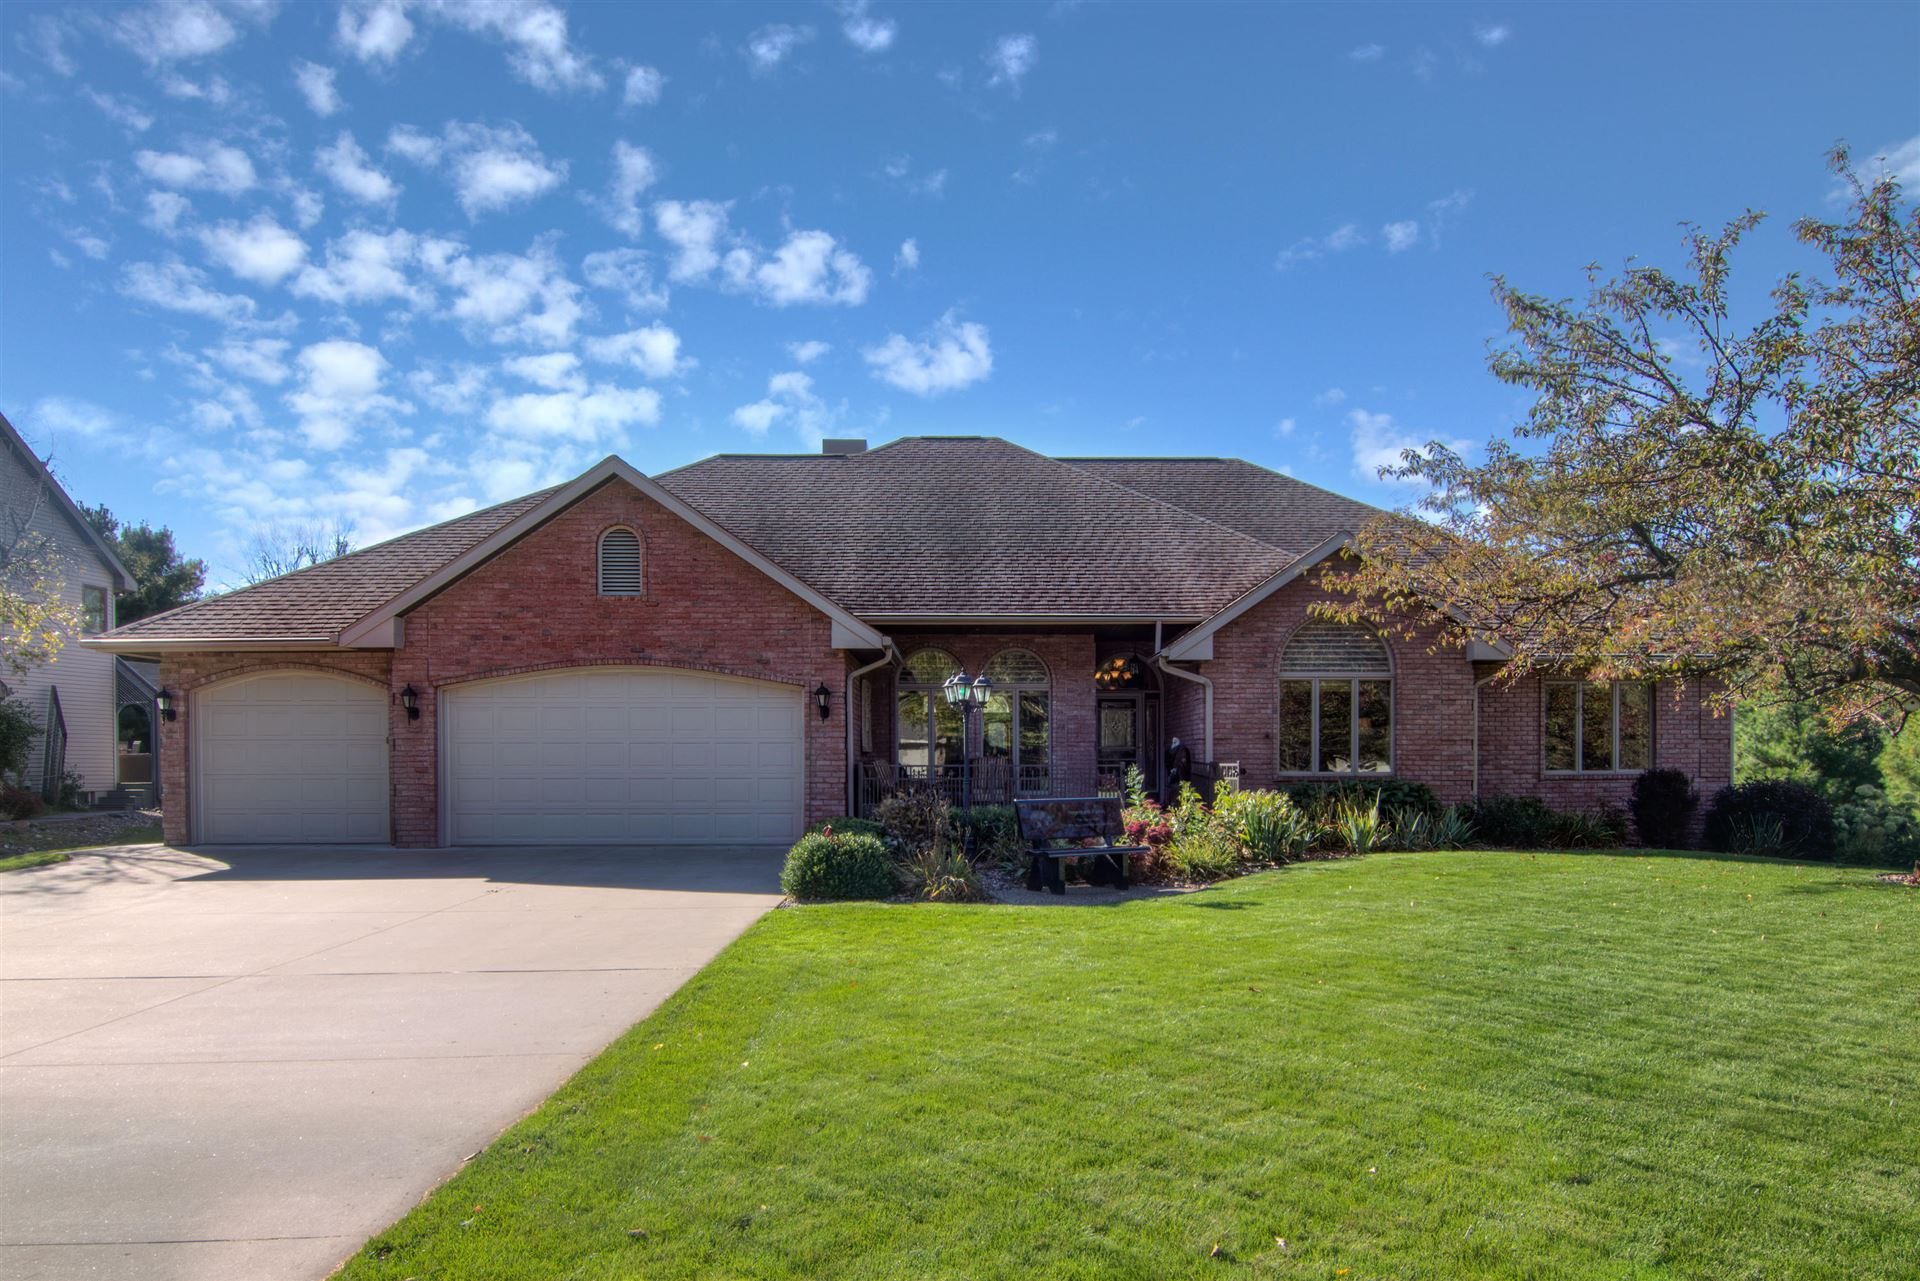 2400 Cedar Creek Ln, Onalaska, WI 54650 - MLS#: 1714195